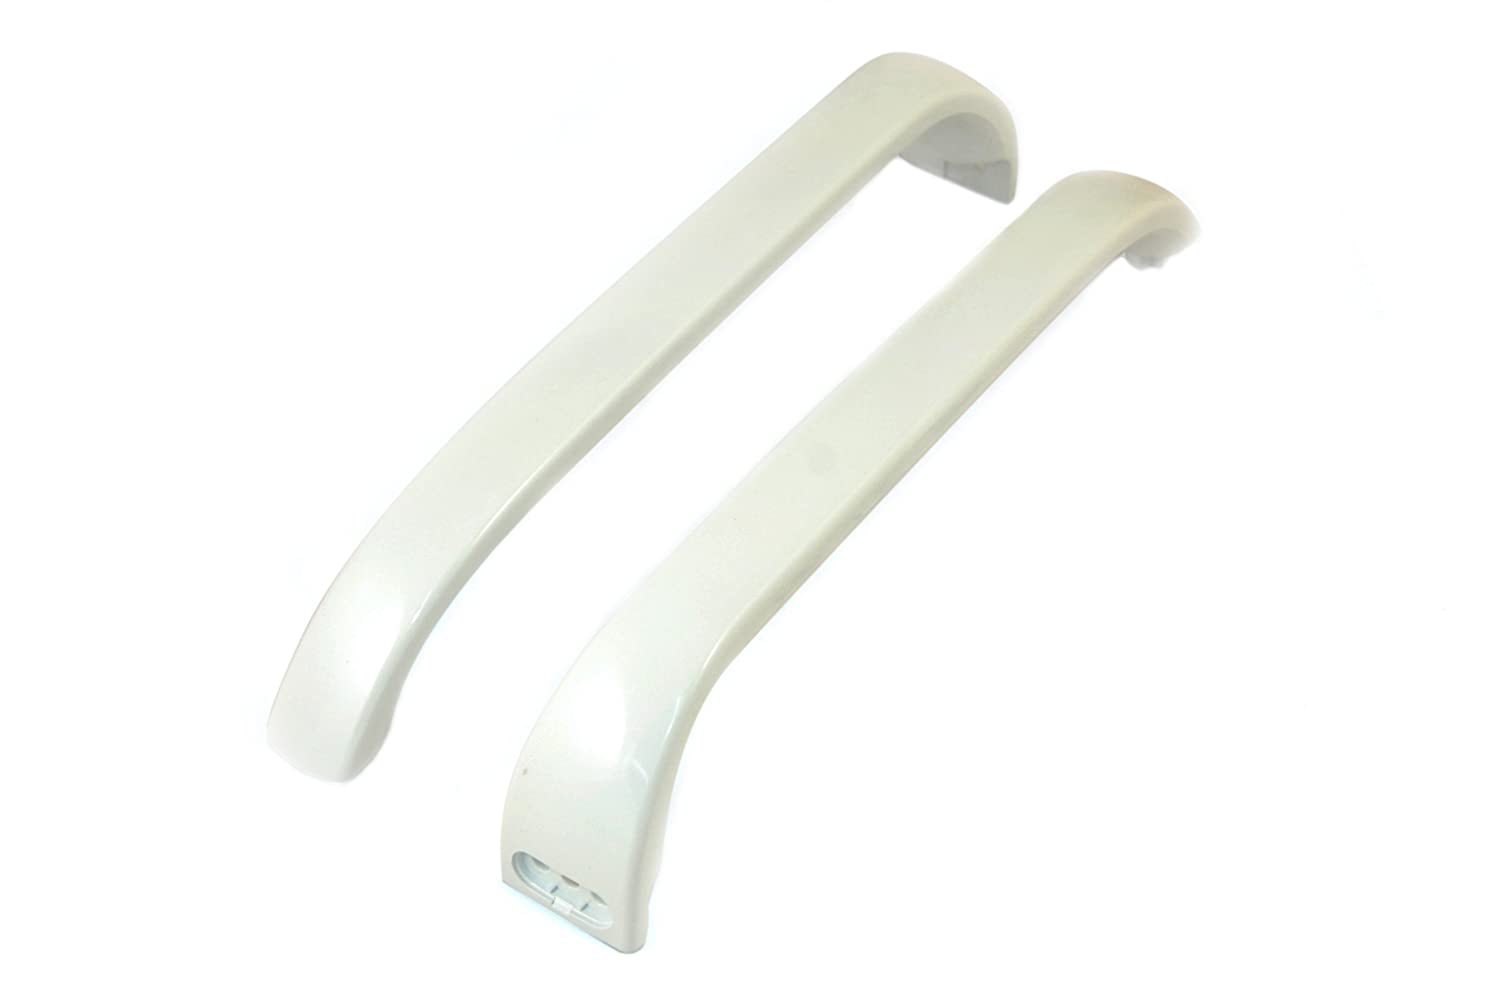 Bosch White Fridge Freezer Door Handles. Genuine part number 369542